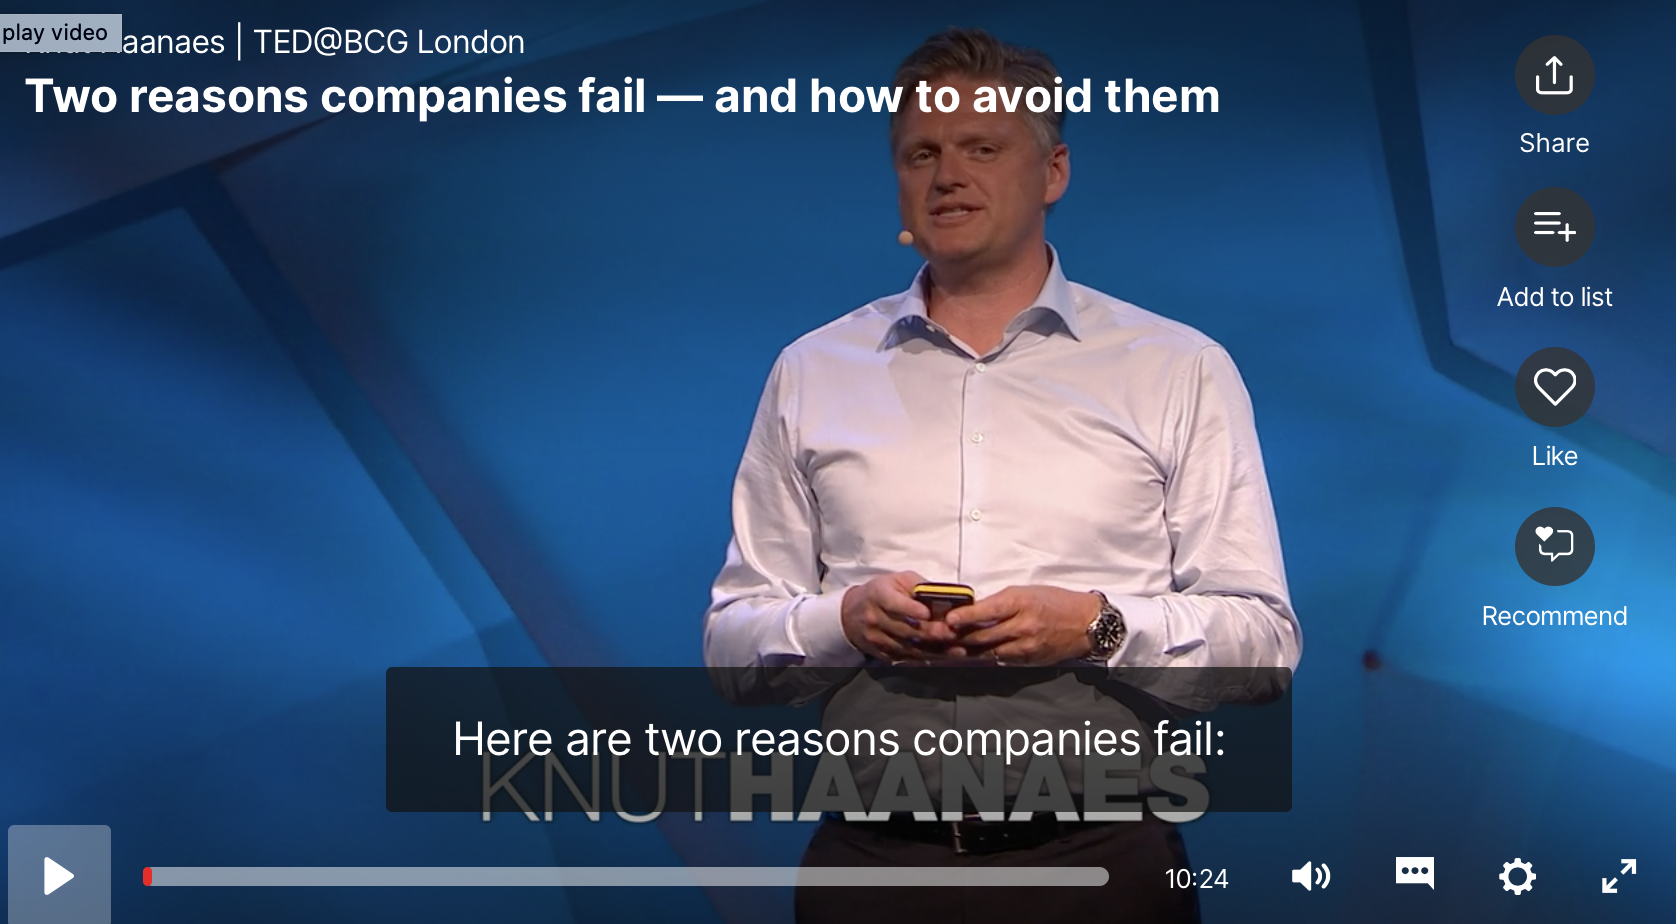 Two main reasons companies fail - and how to avoid them